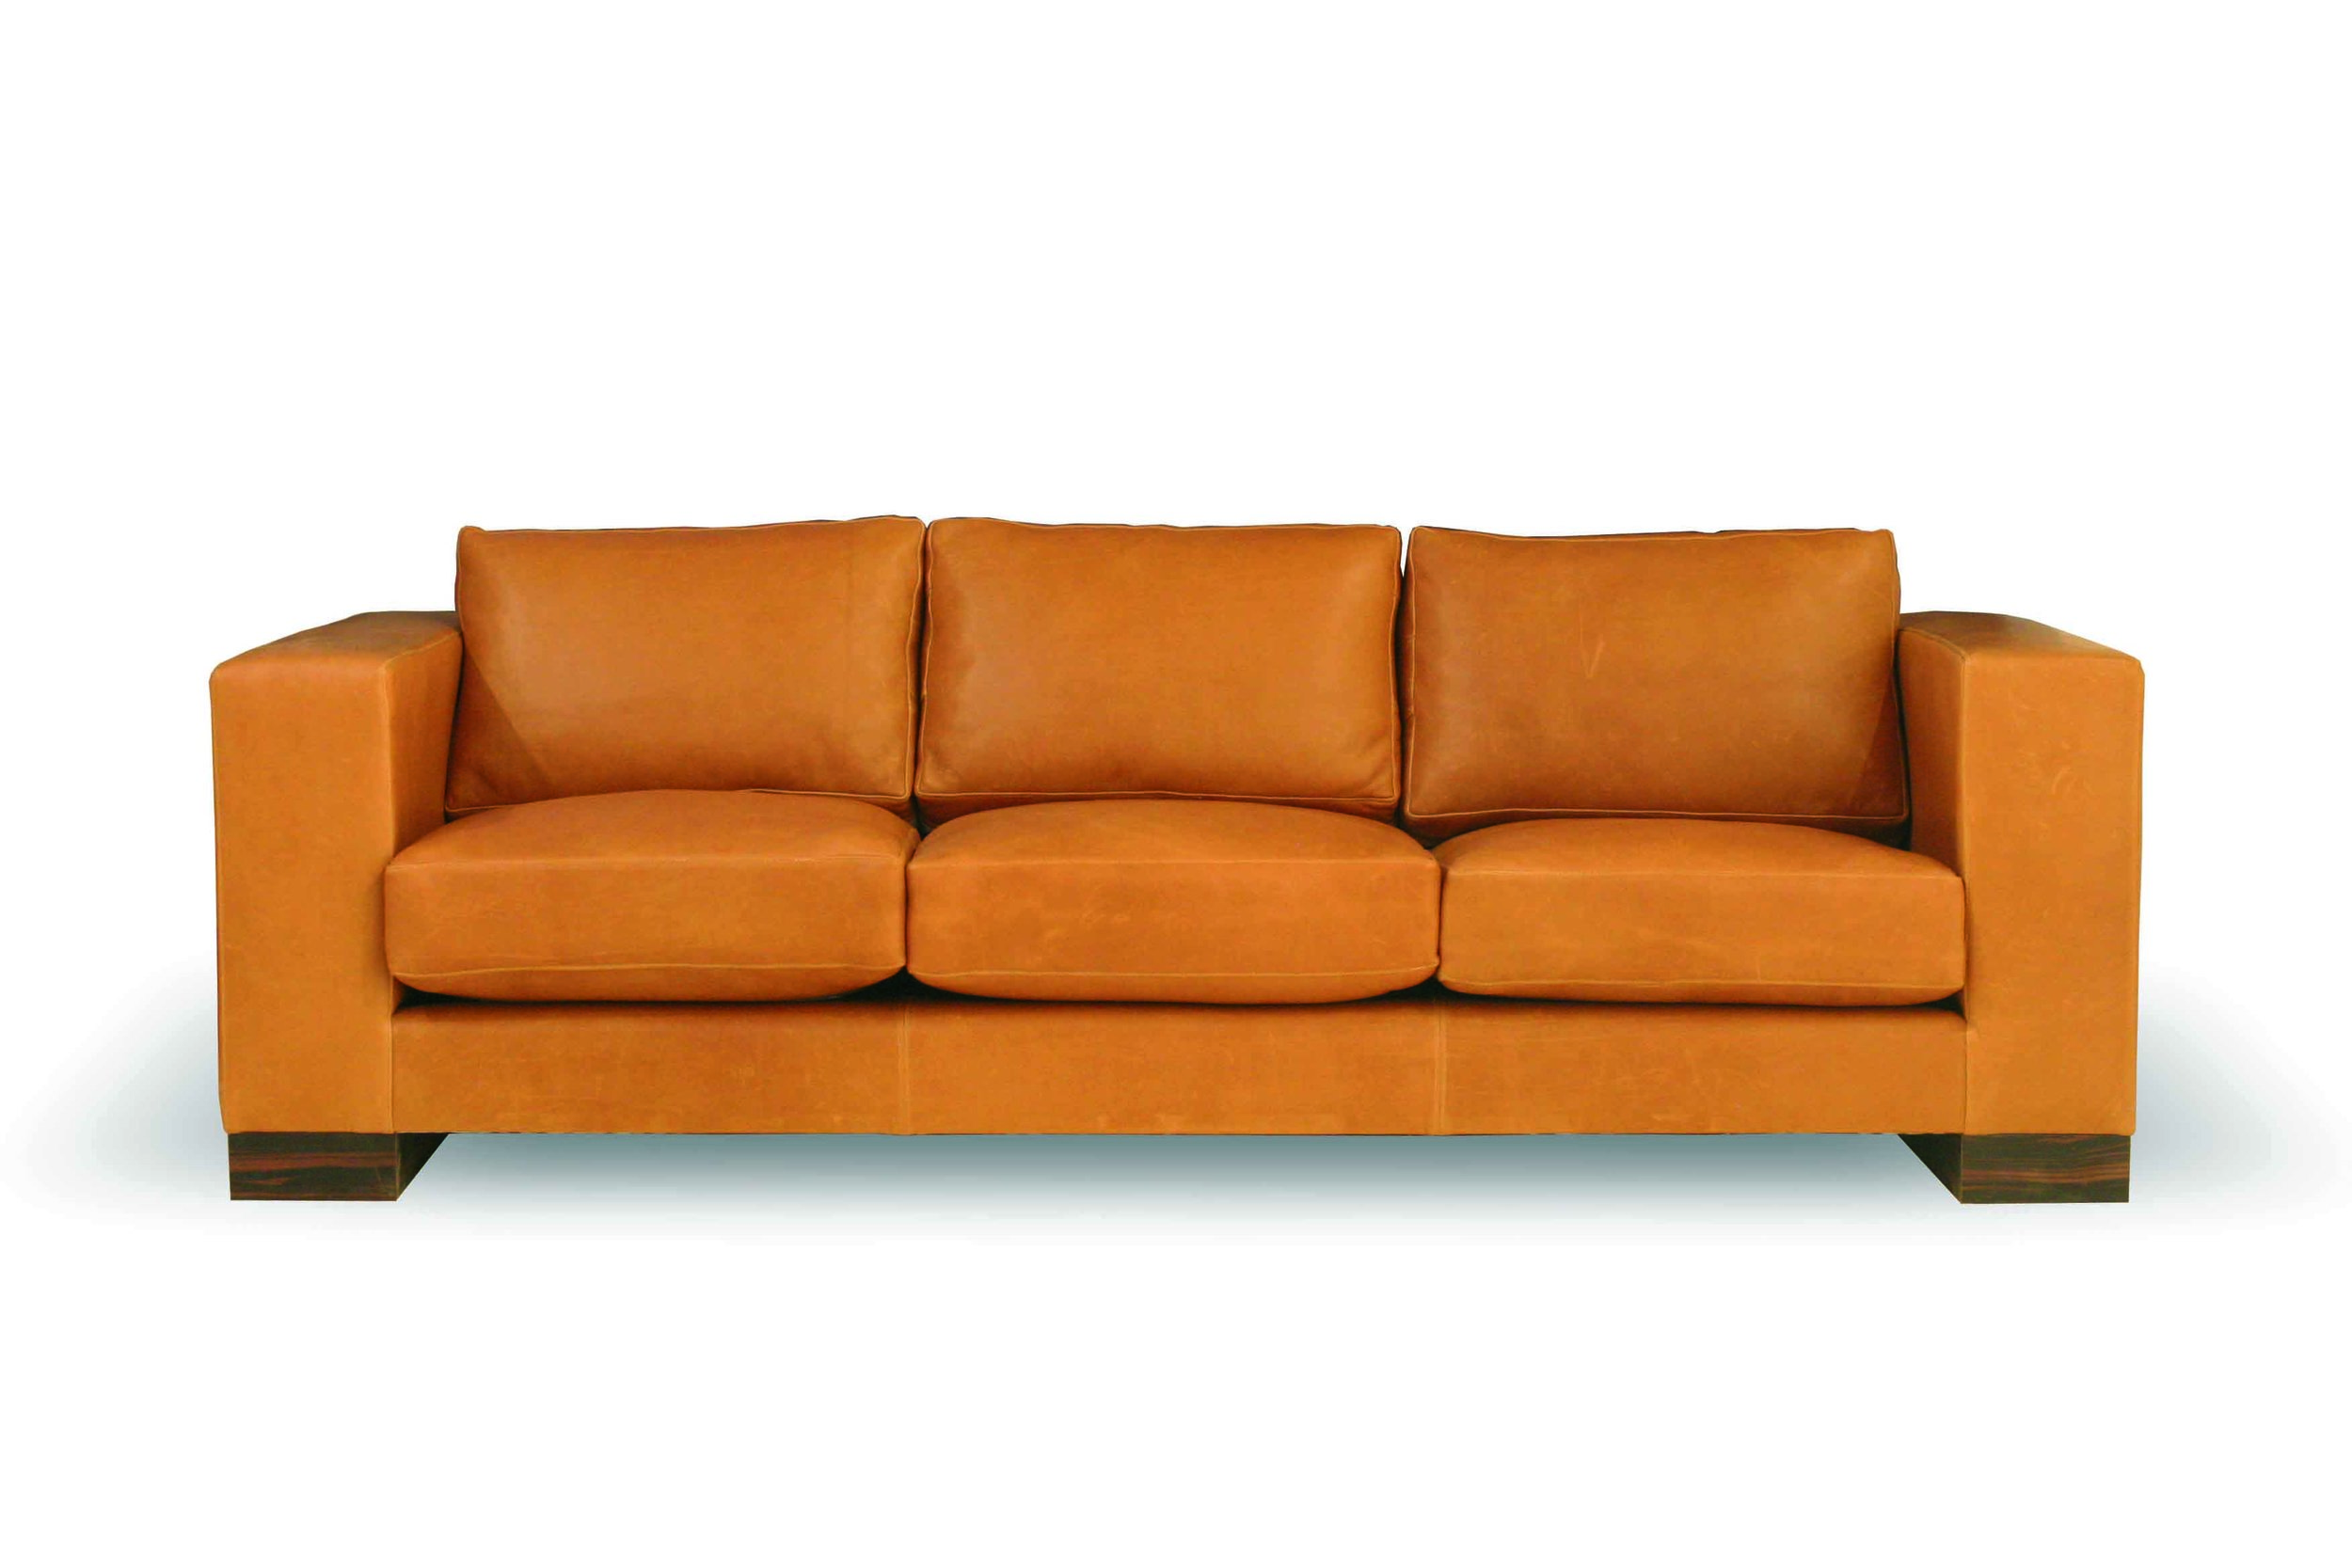 Custom Large Leather Sofa with Pillows